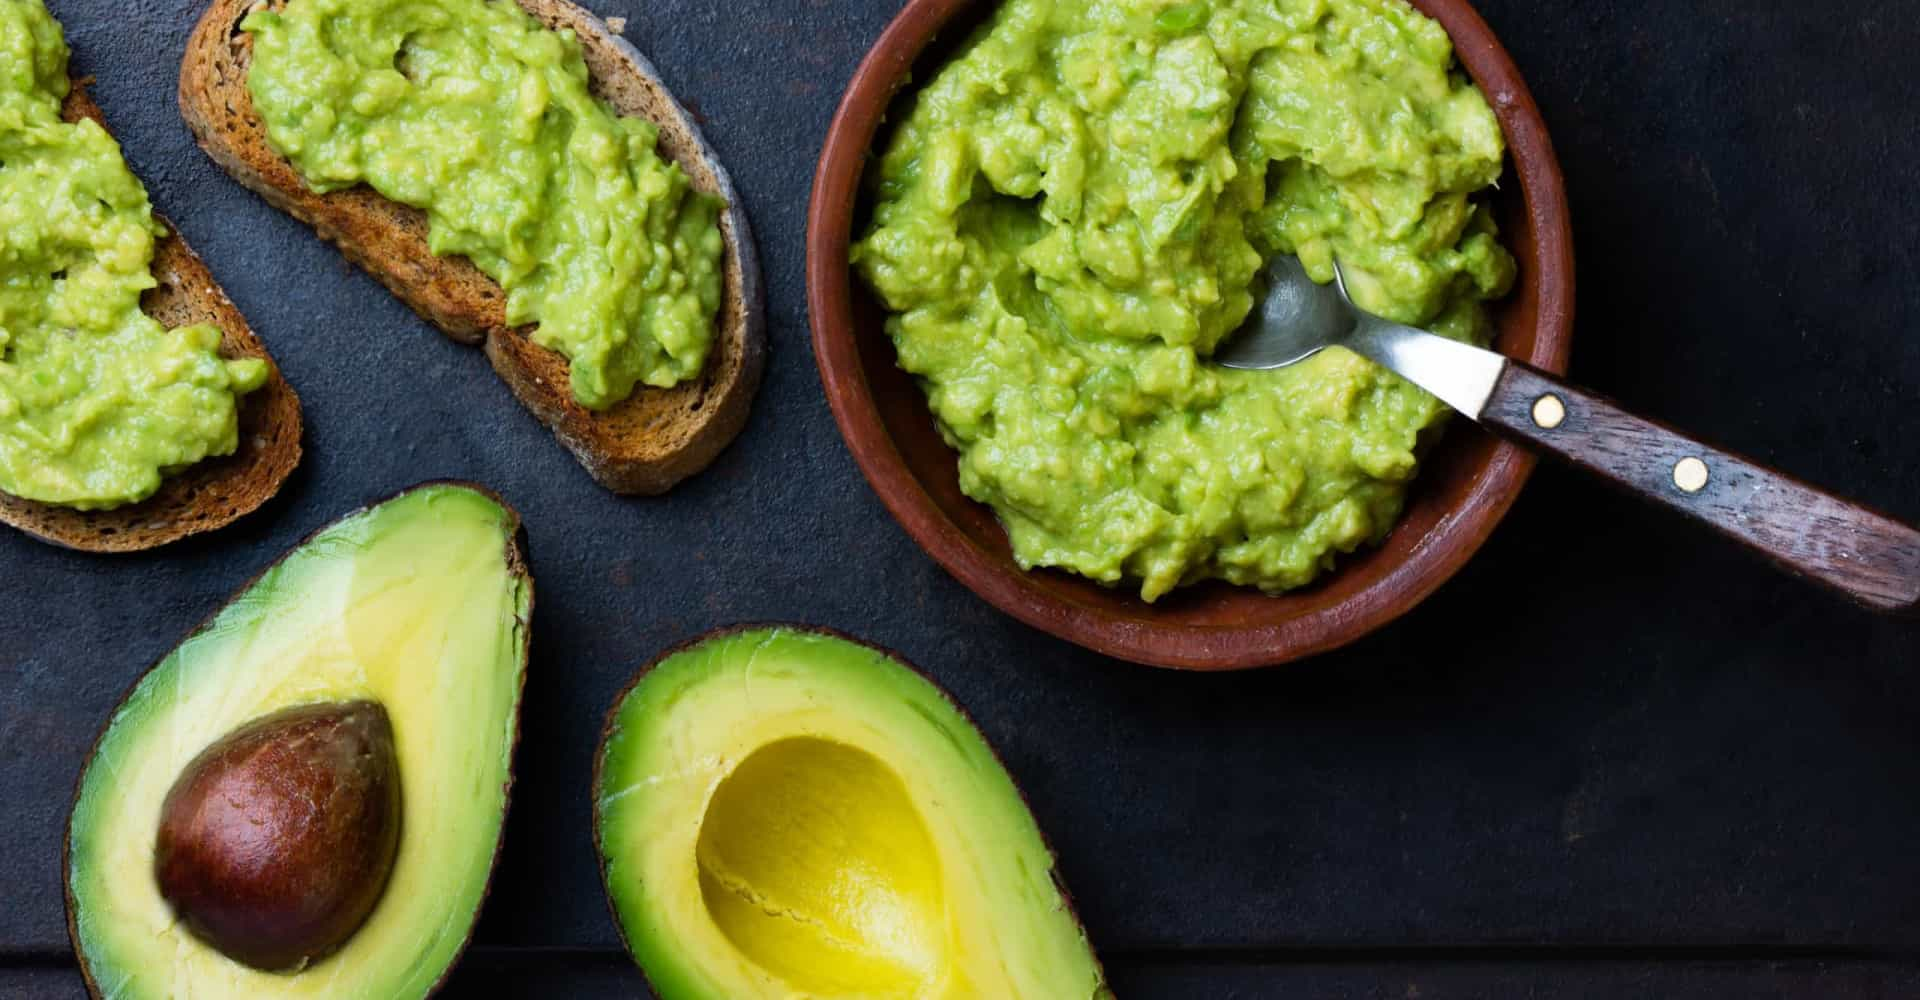 Disturbing consequences of eating avocados